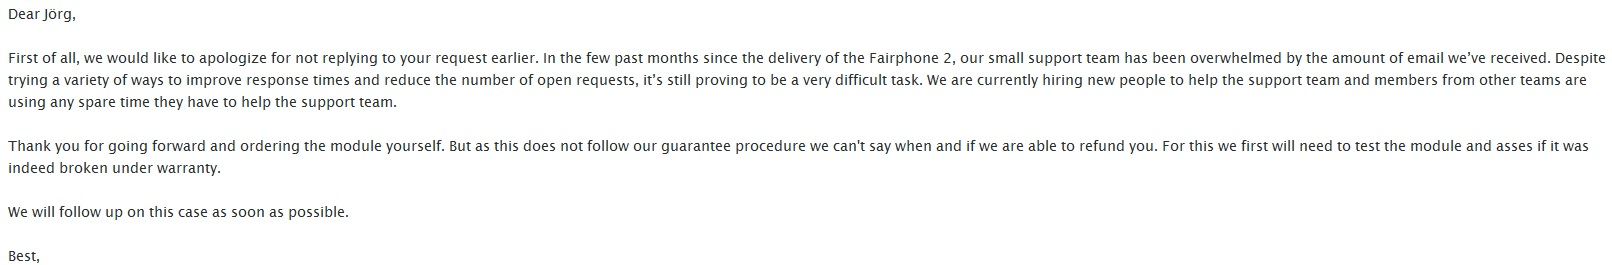 fairphone_support2